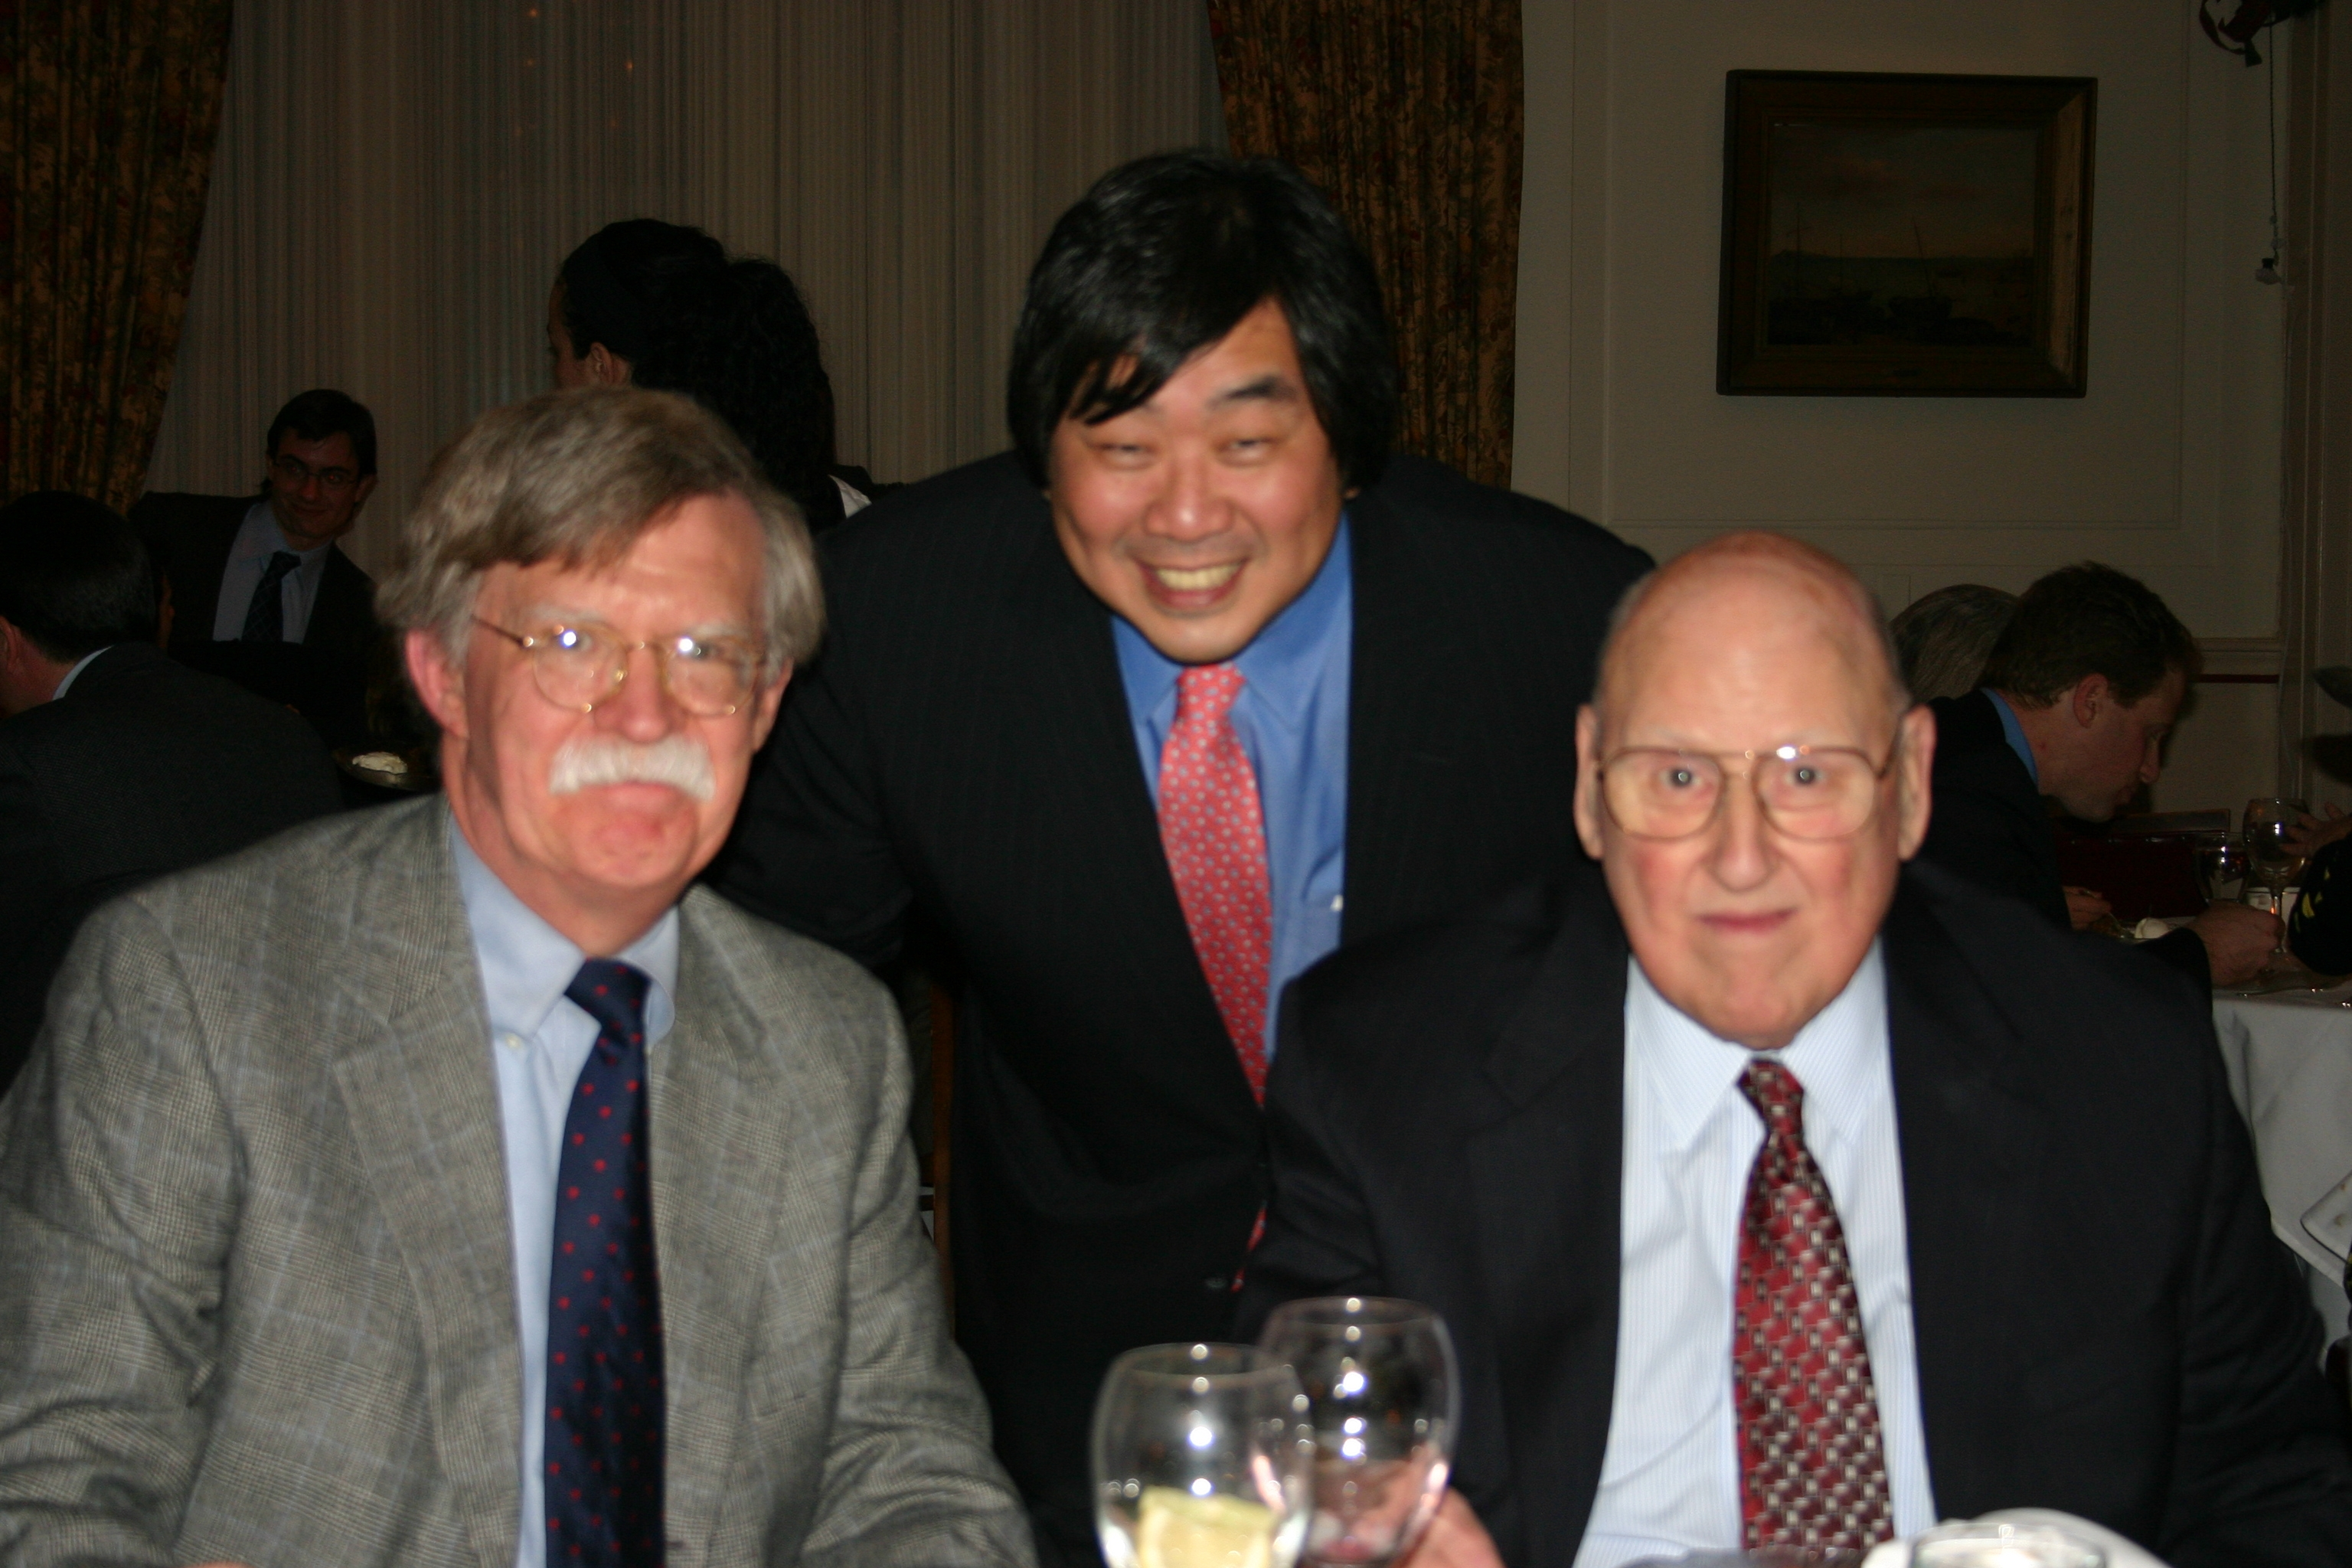 Ambassador John Bolton '74, YLS Dean Harold Koh, and the Hon. Ralph Winter '60